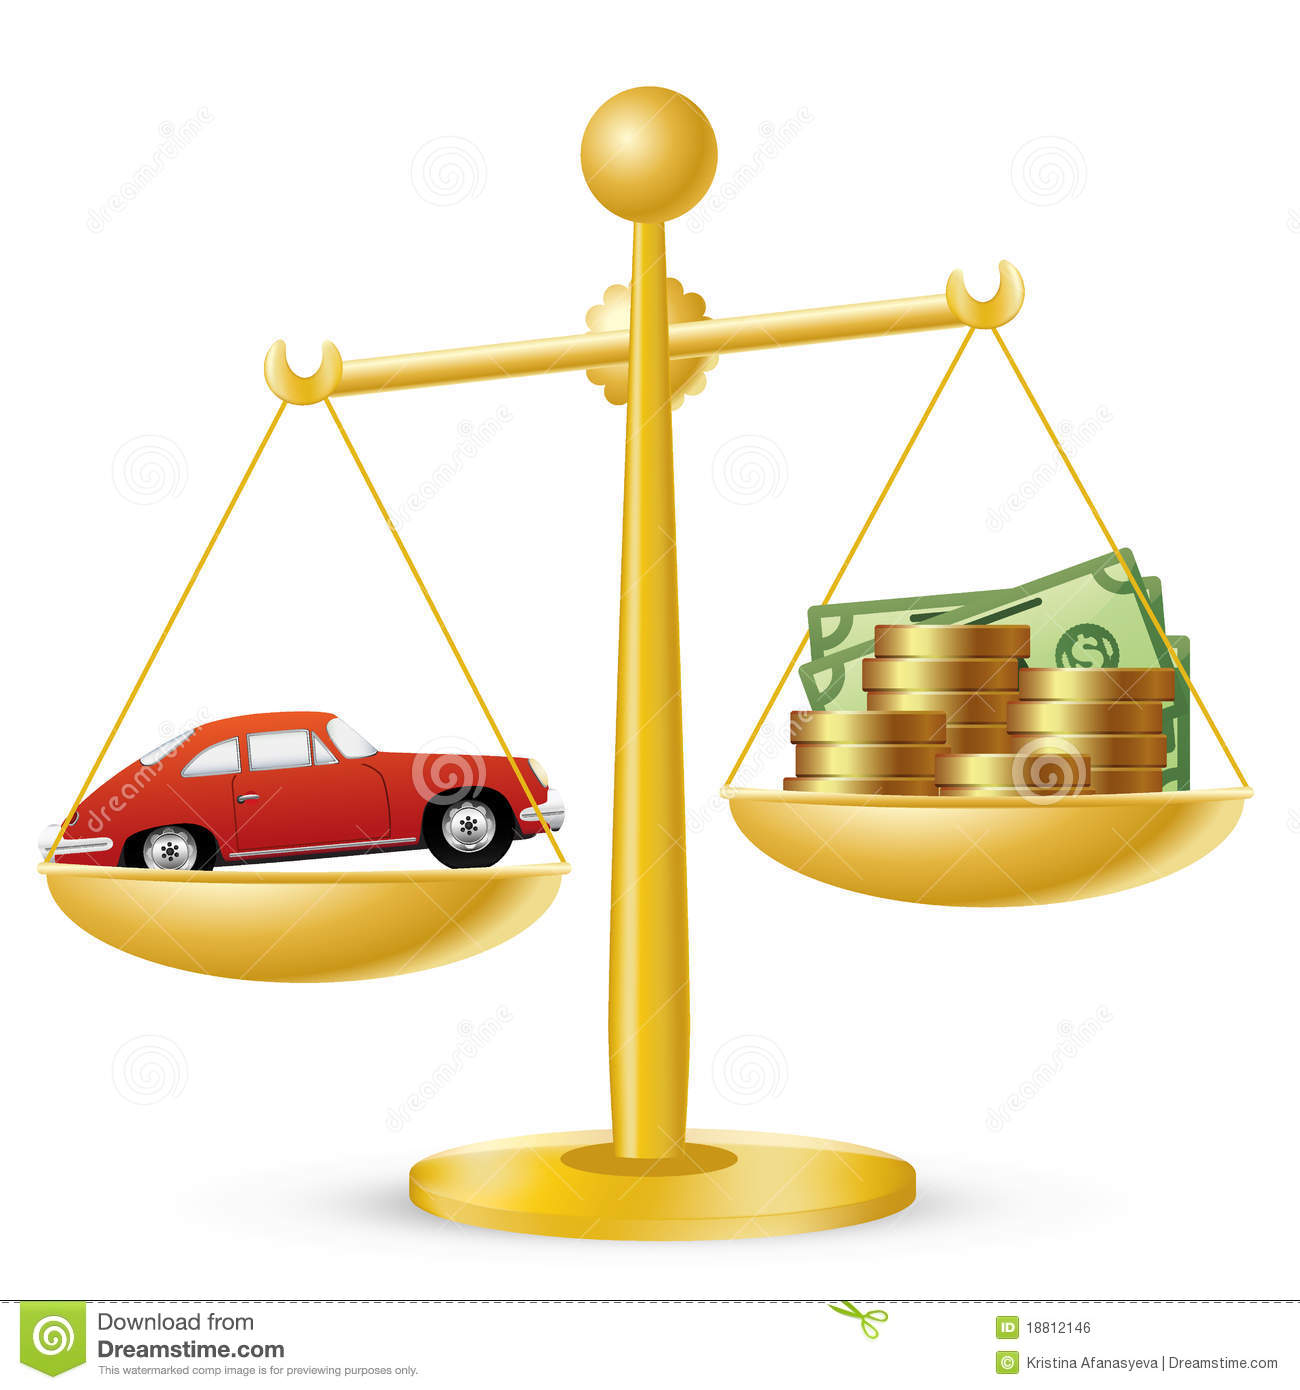 car and money on scales royalty free stock image   image